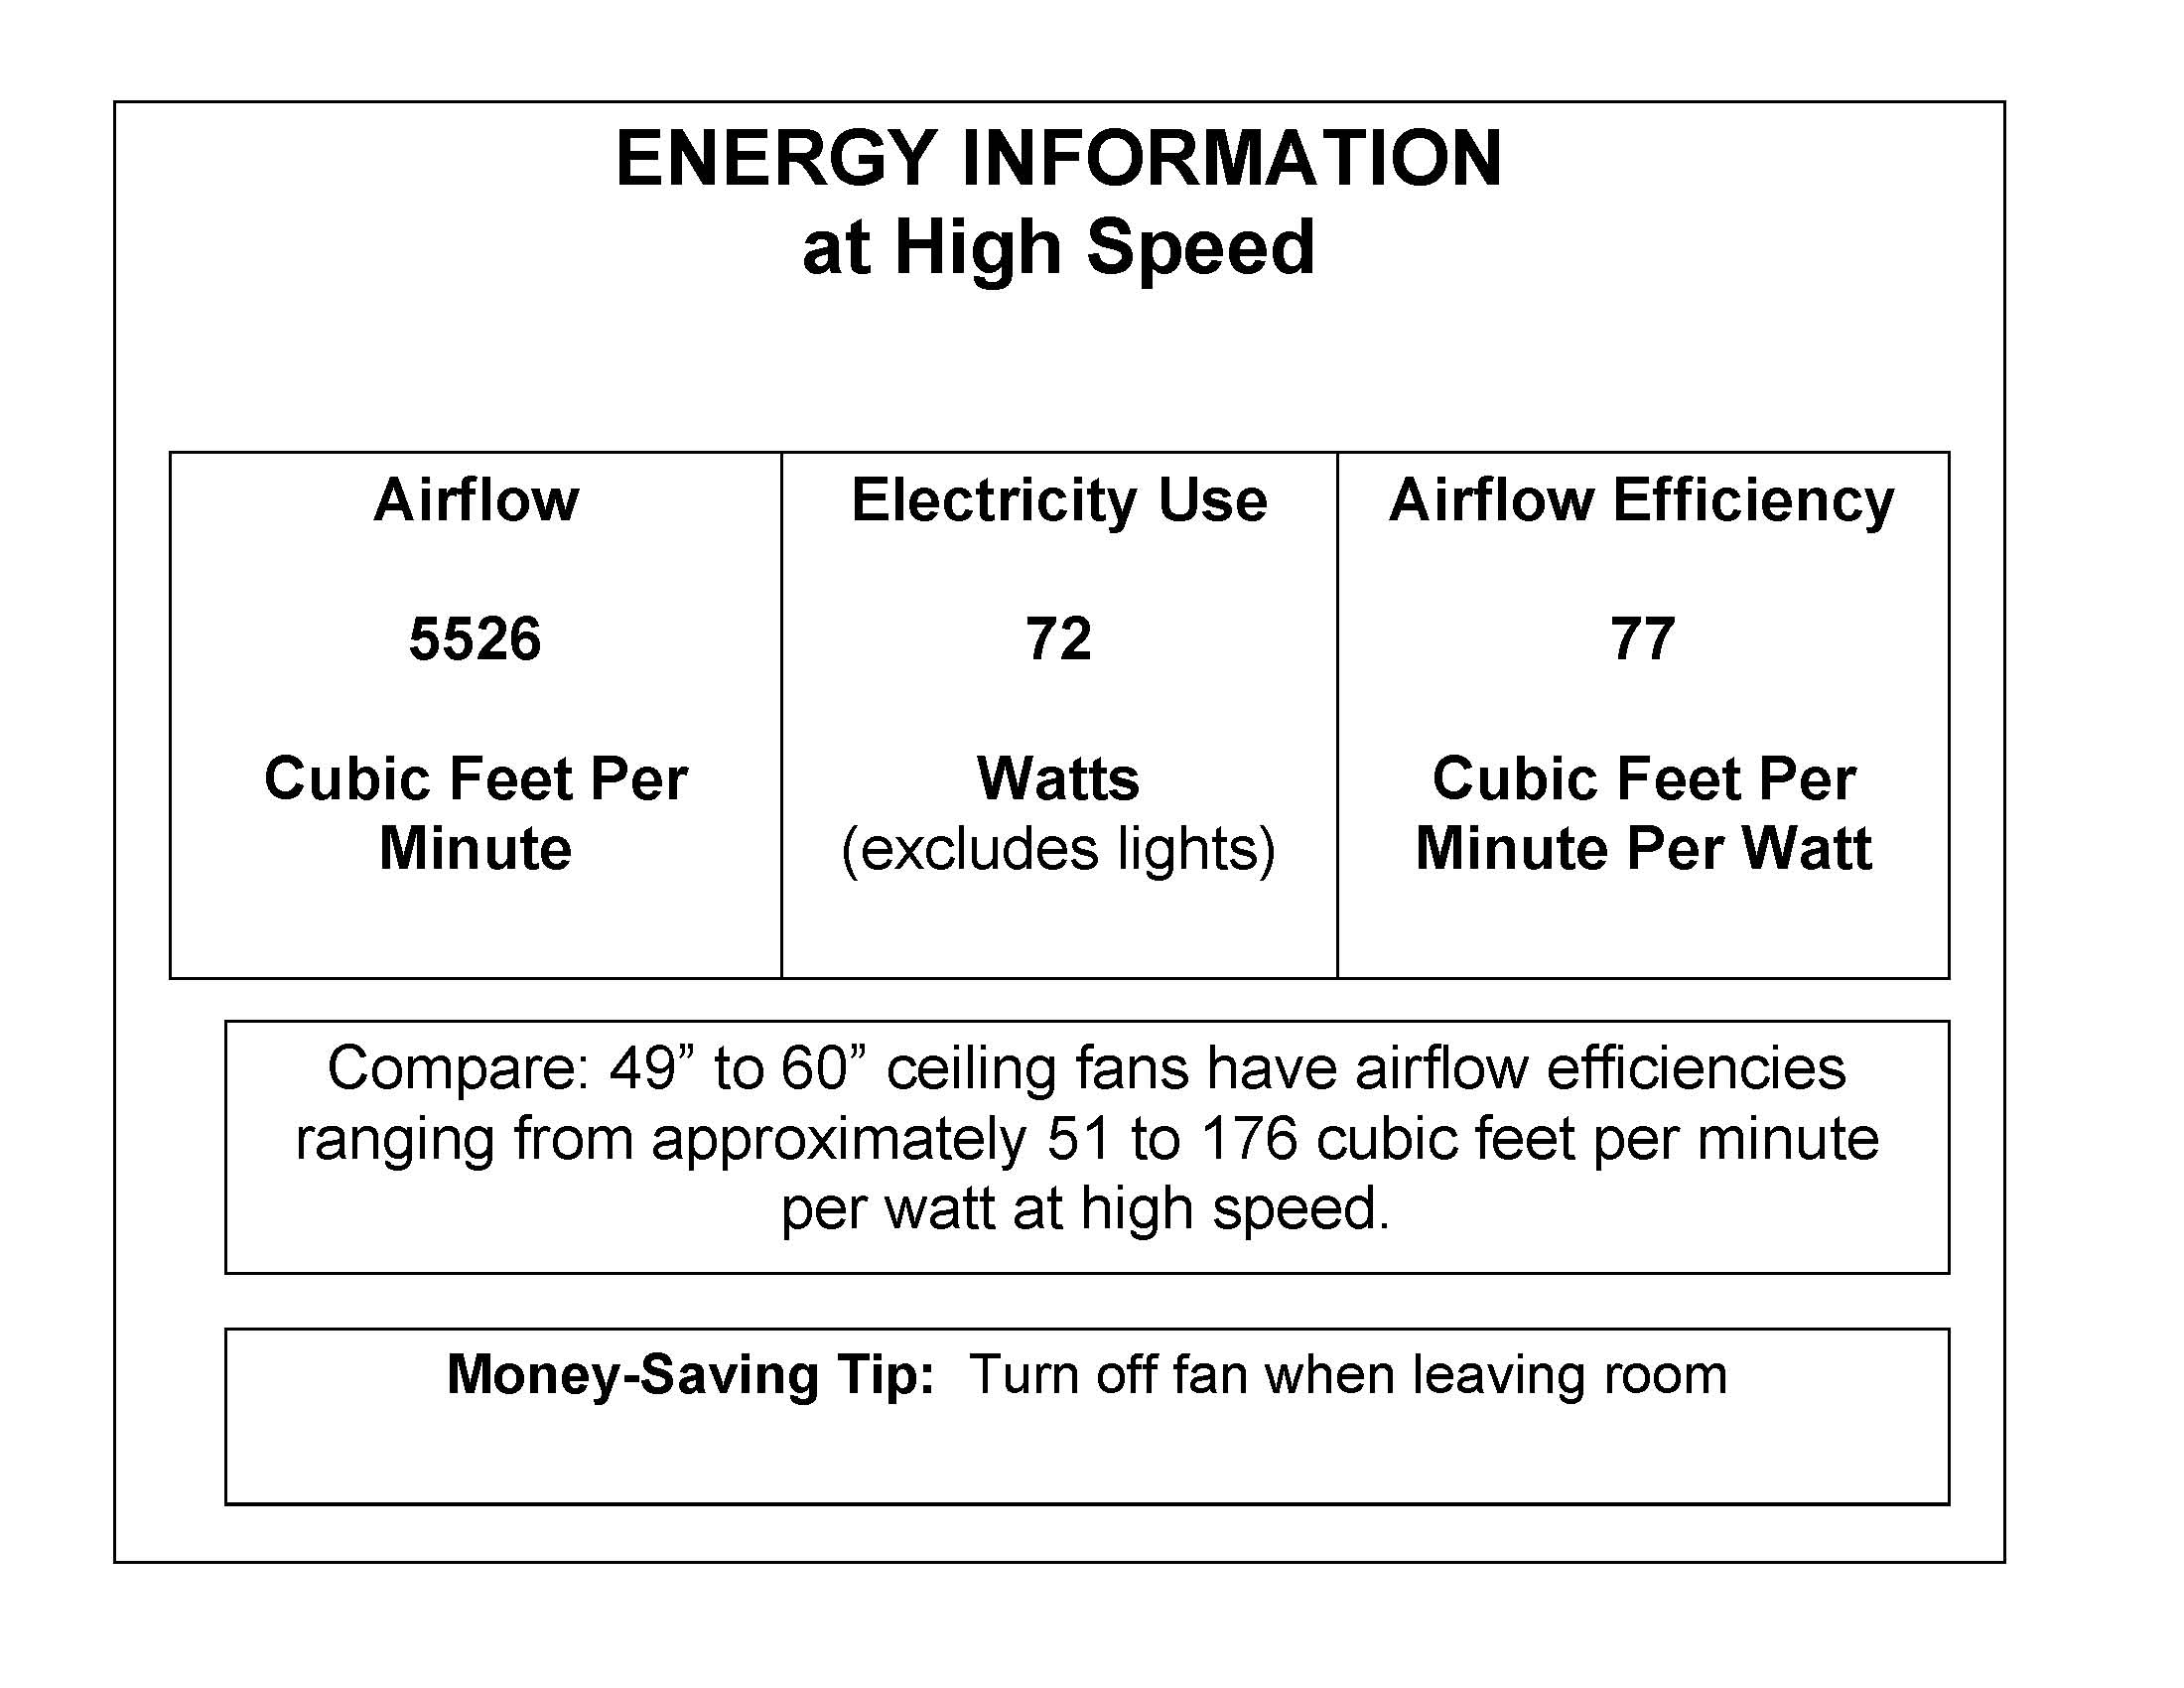 Harbor Breeze Ceiling Fan Installation Manual: Energy Guide,Lighting